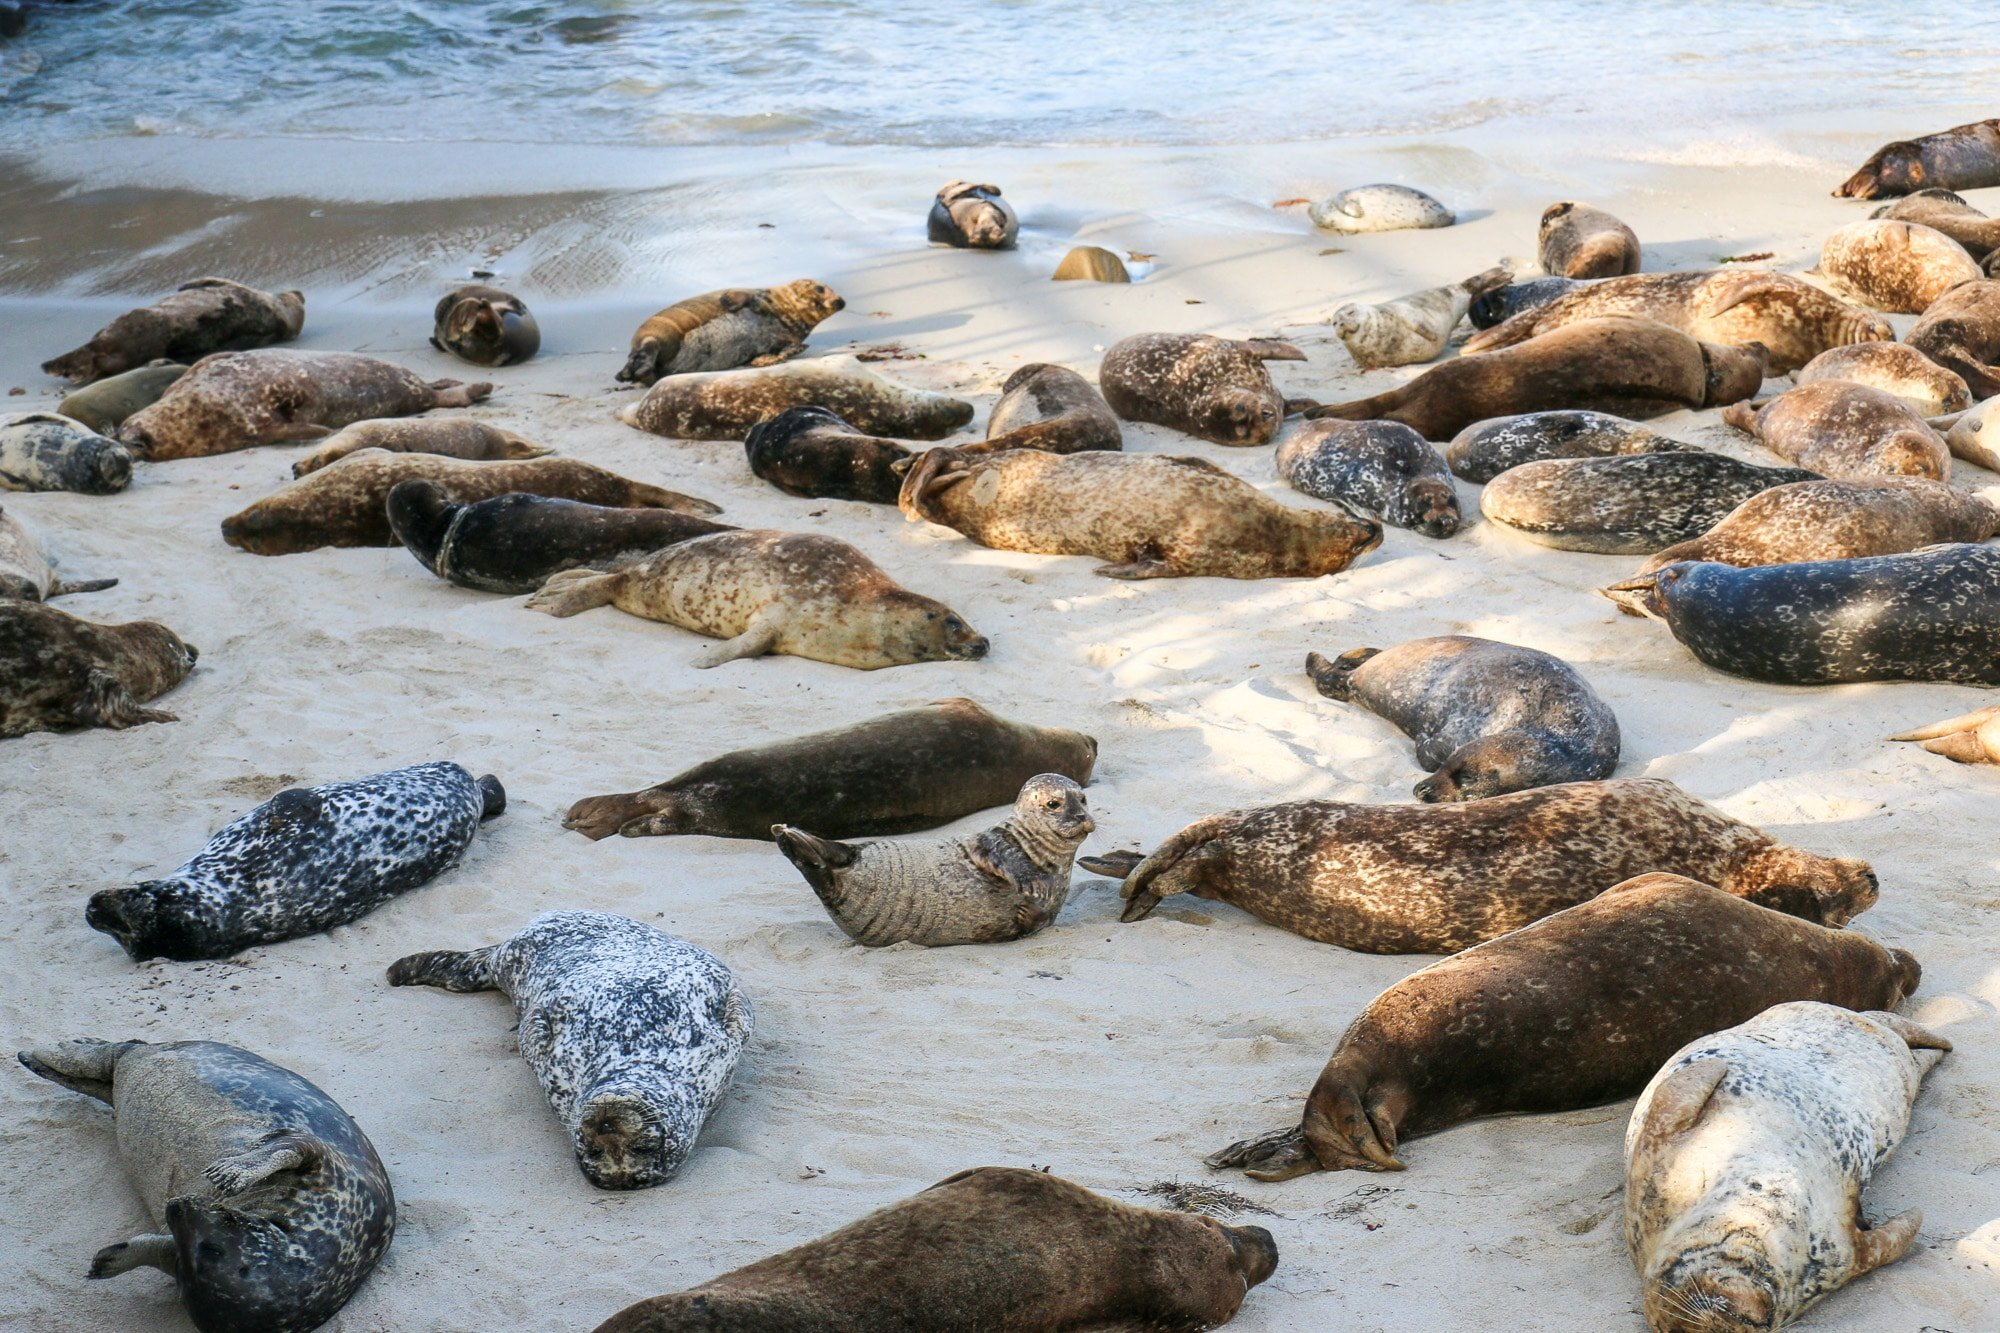 A baby seal perks its head up while others slumber on the sand around it.